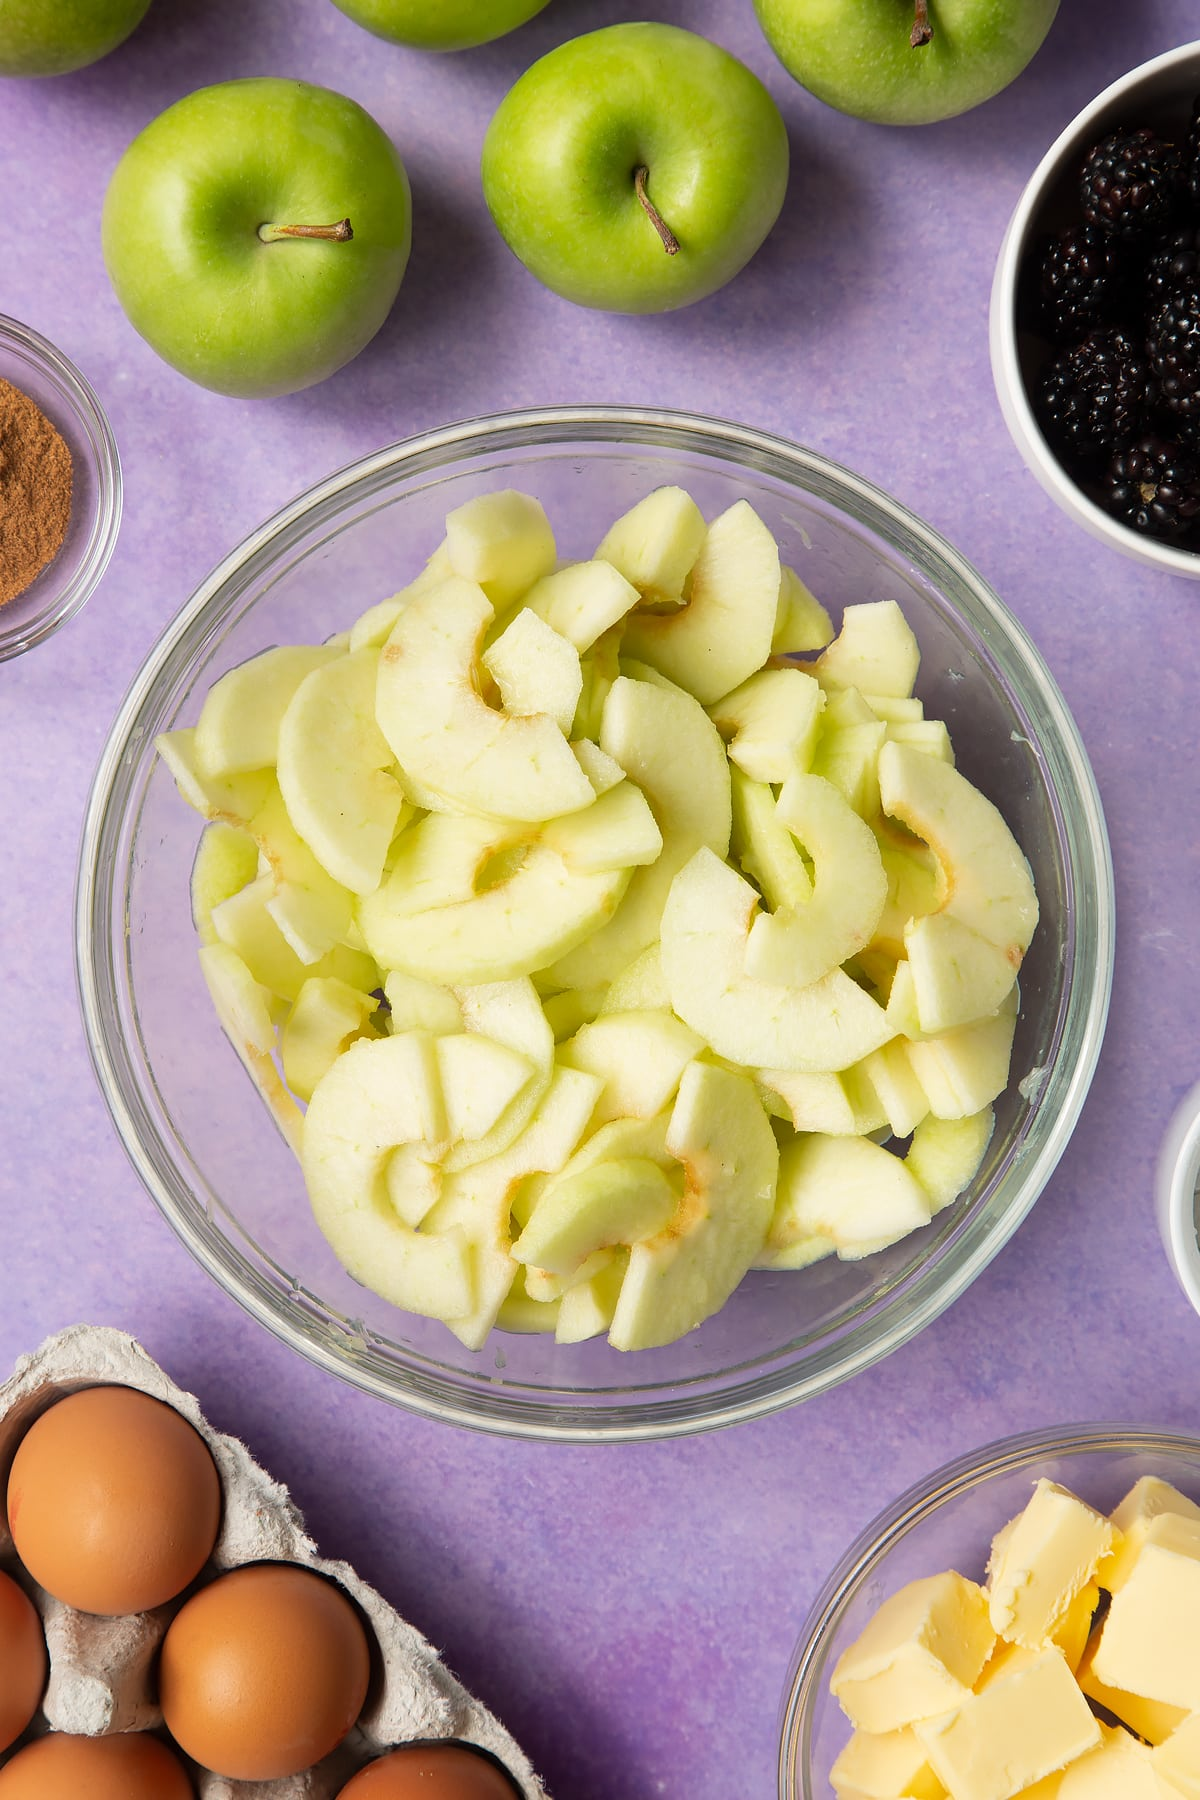 Apple slices in a glass mixing bowl. Ingredients to make apple and blackberry pie surround the bowl.